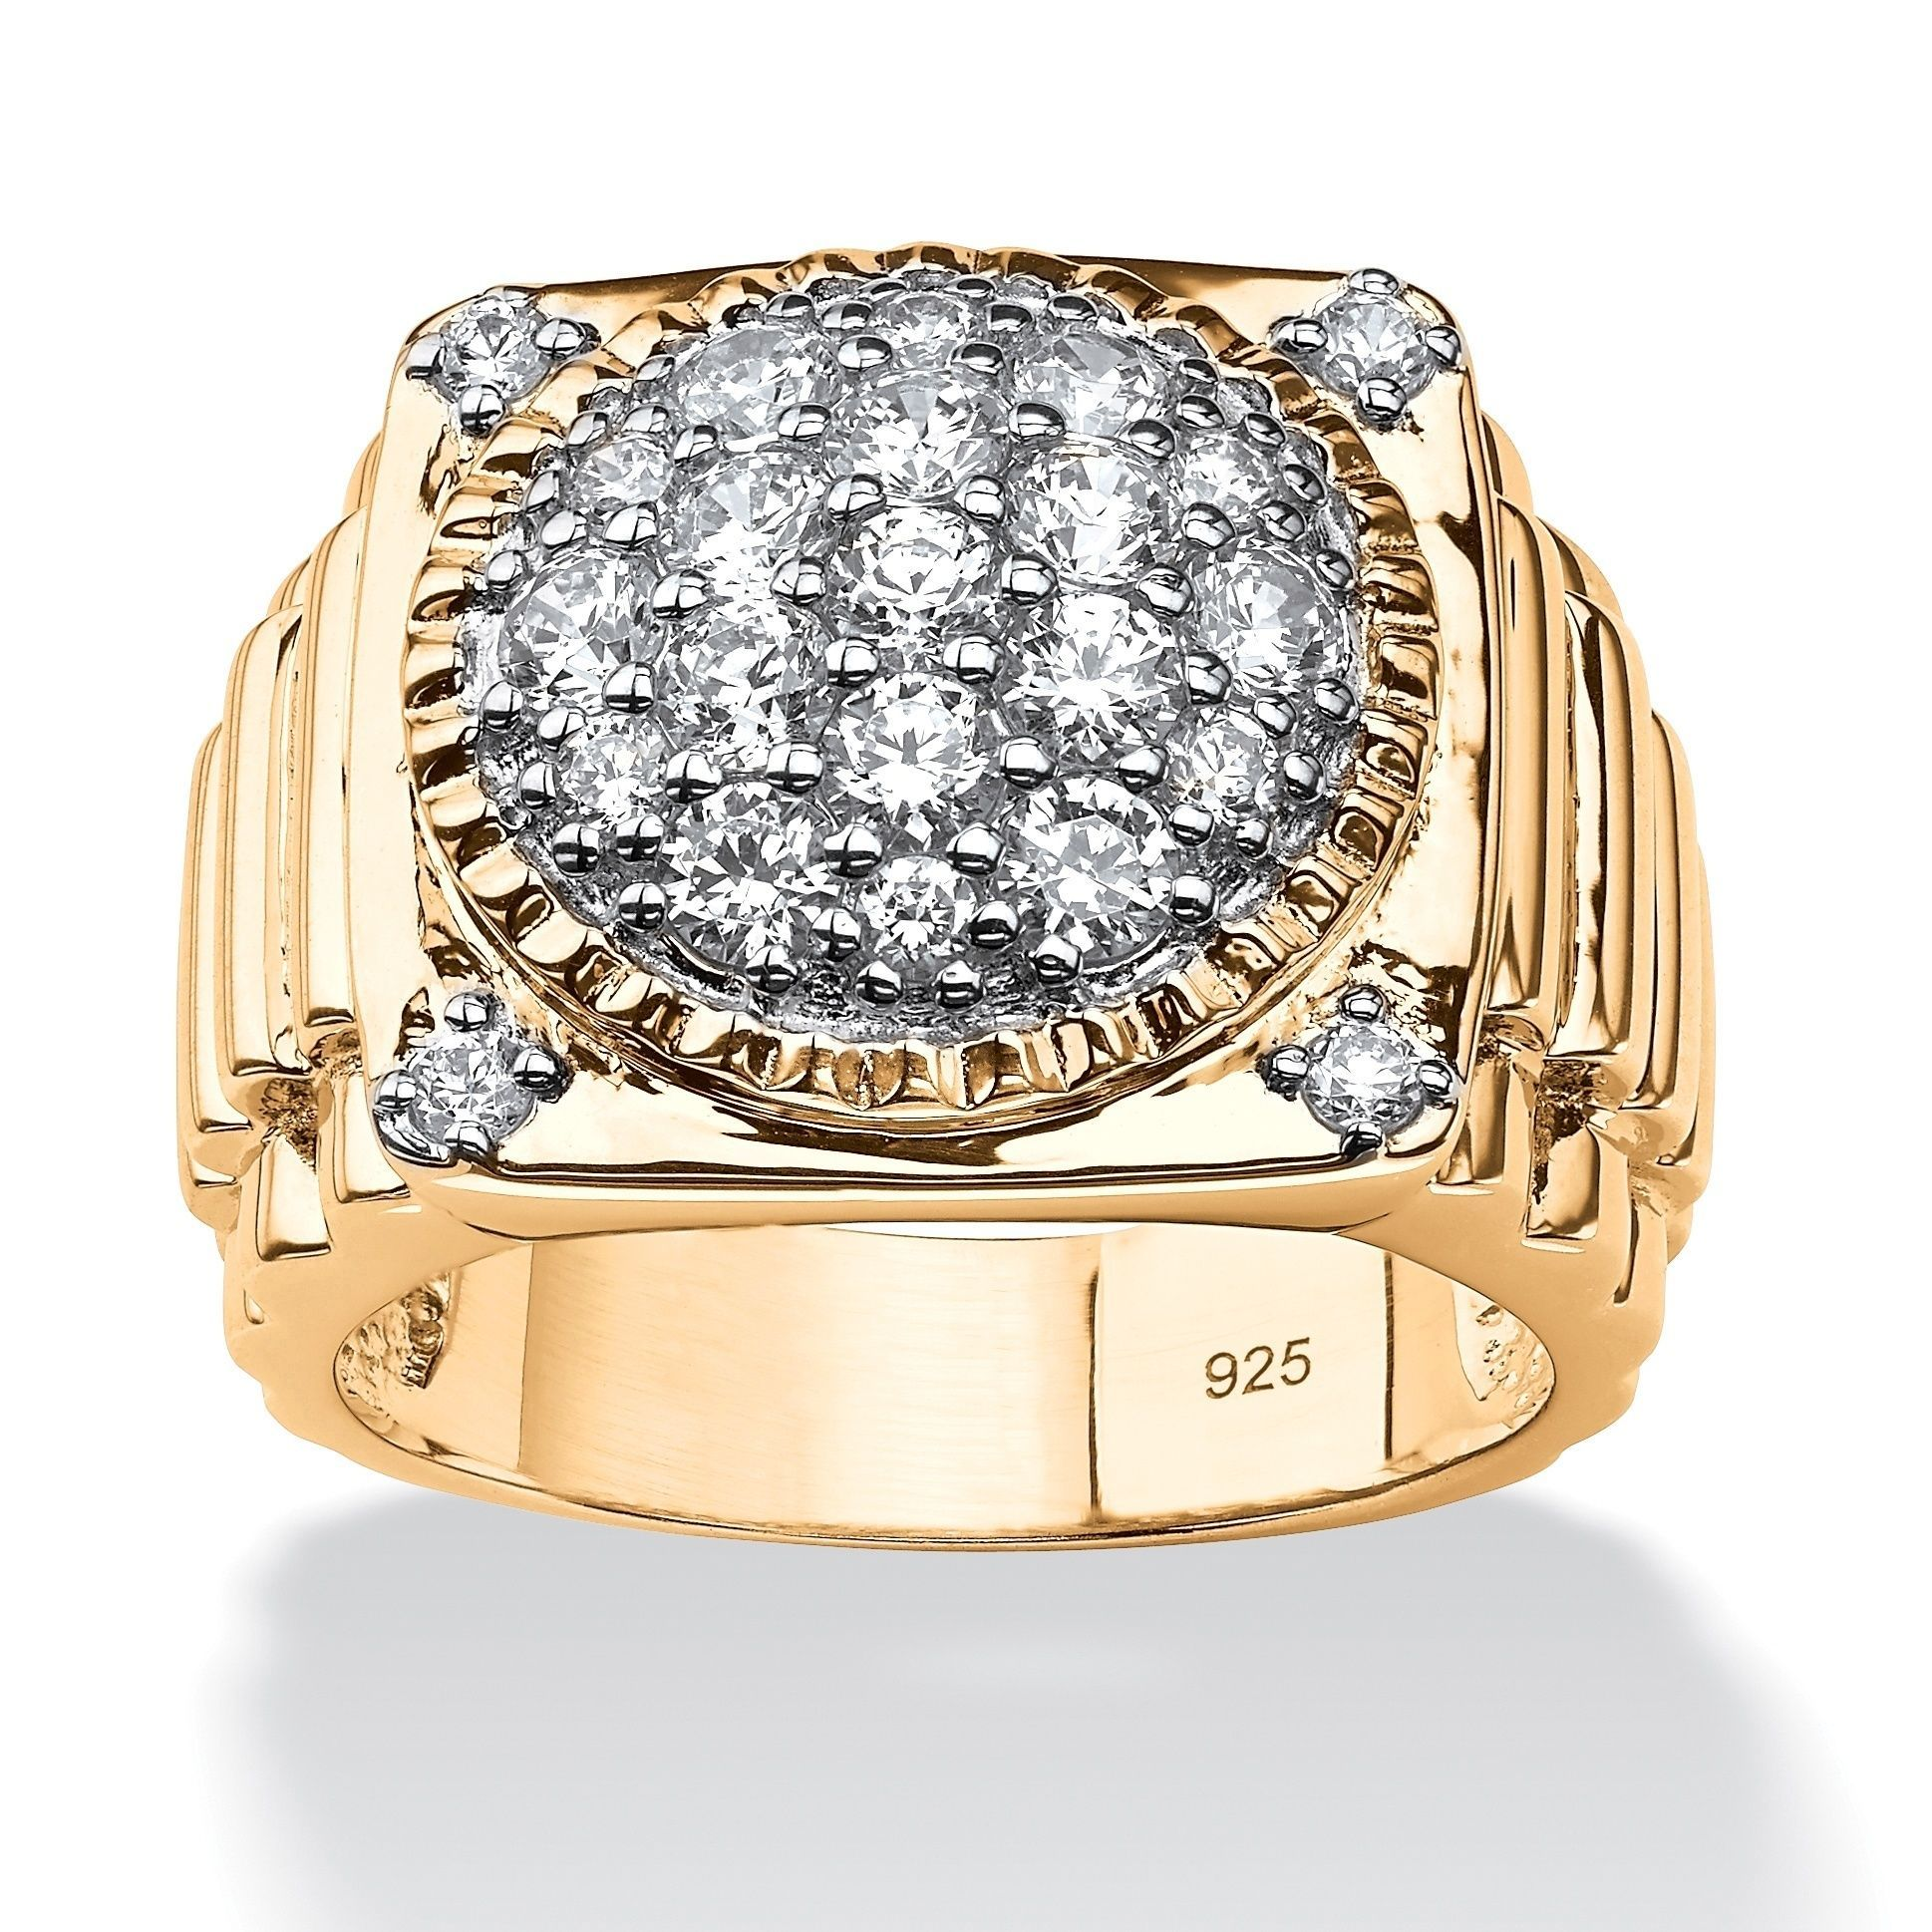 14k Gold over Sterling Silver Men's 1 5/8ct Round Pave